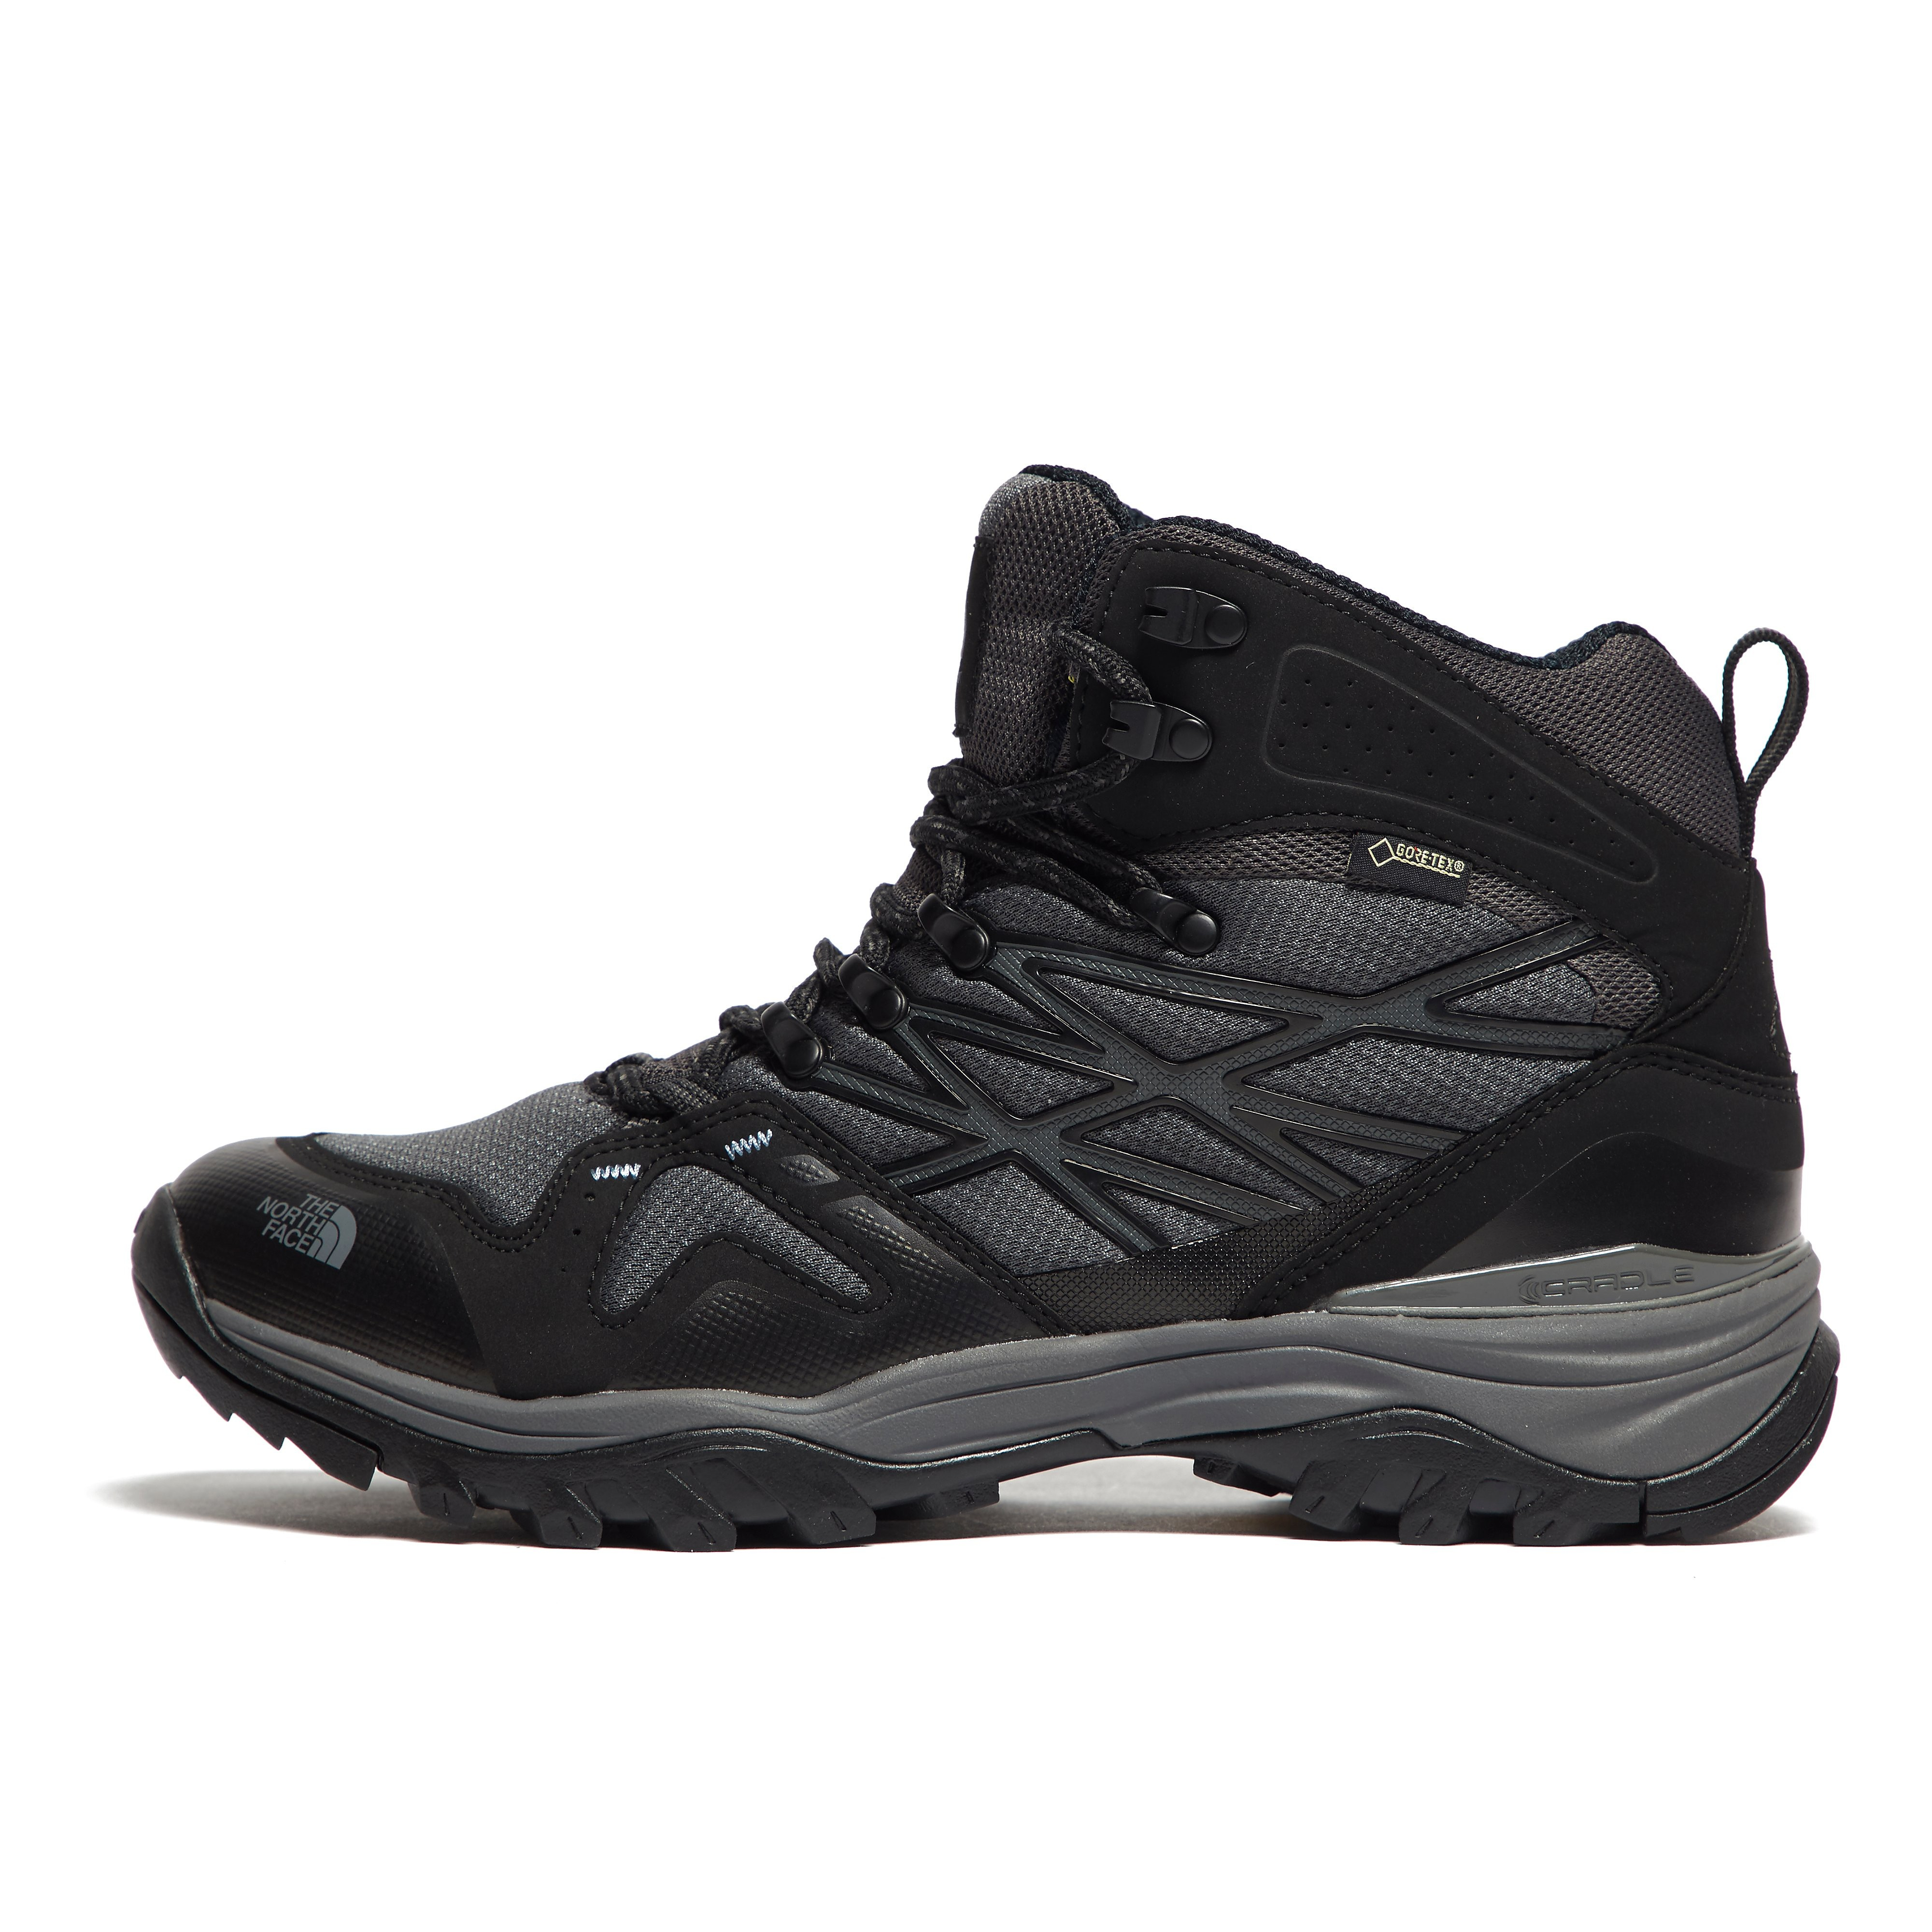 The North Face Hedgehog Fastpack Mid Men's Walking Boot